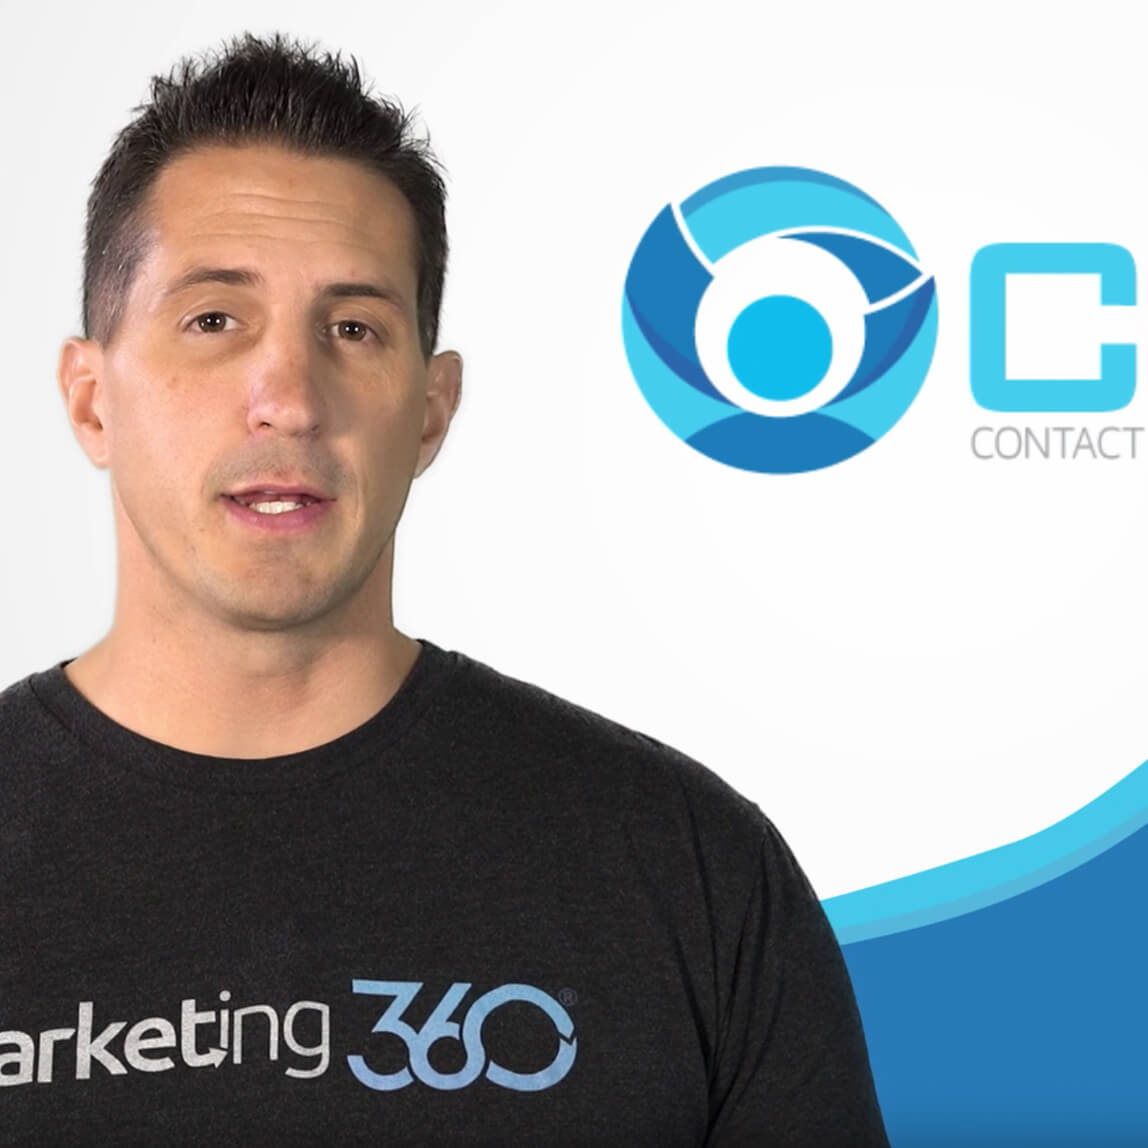 Learn More About Marketing 360® Payments